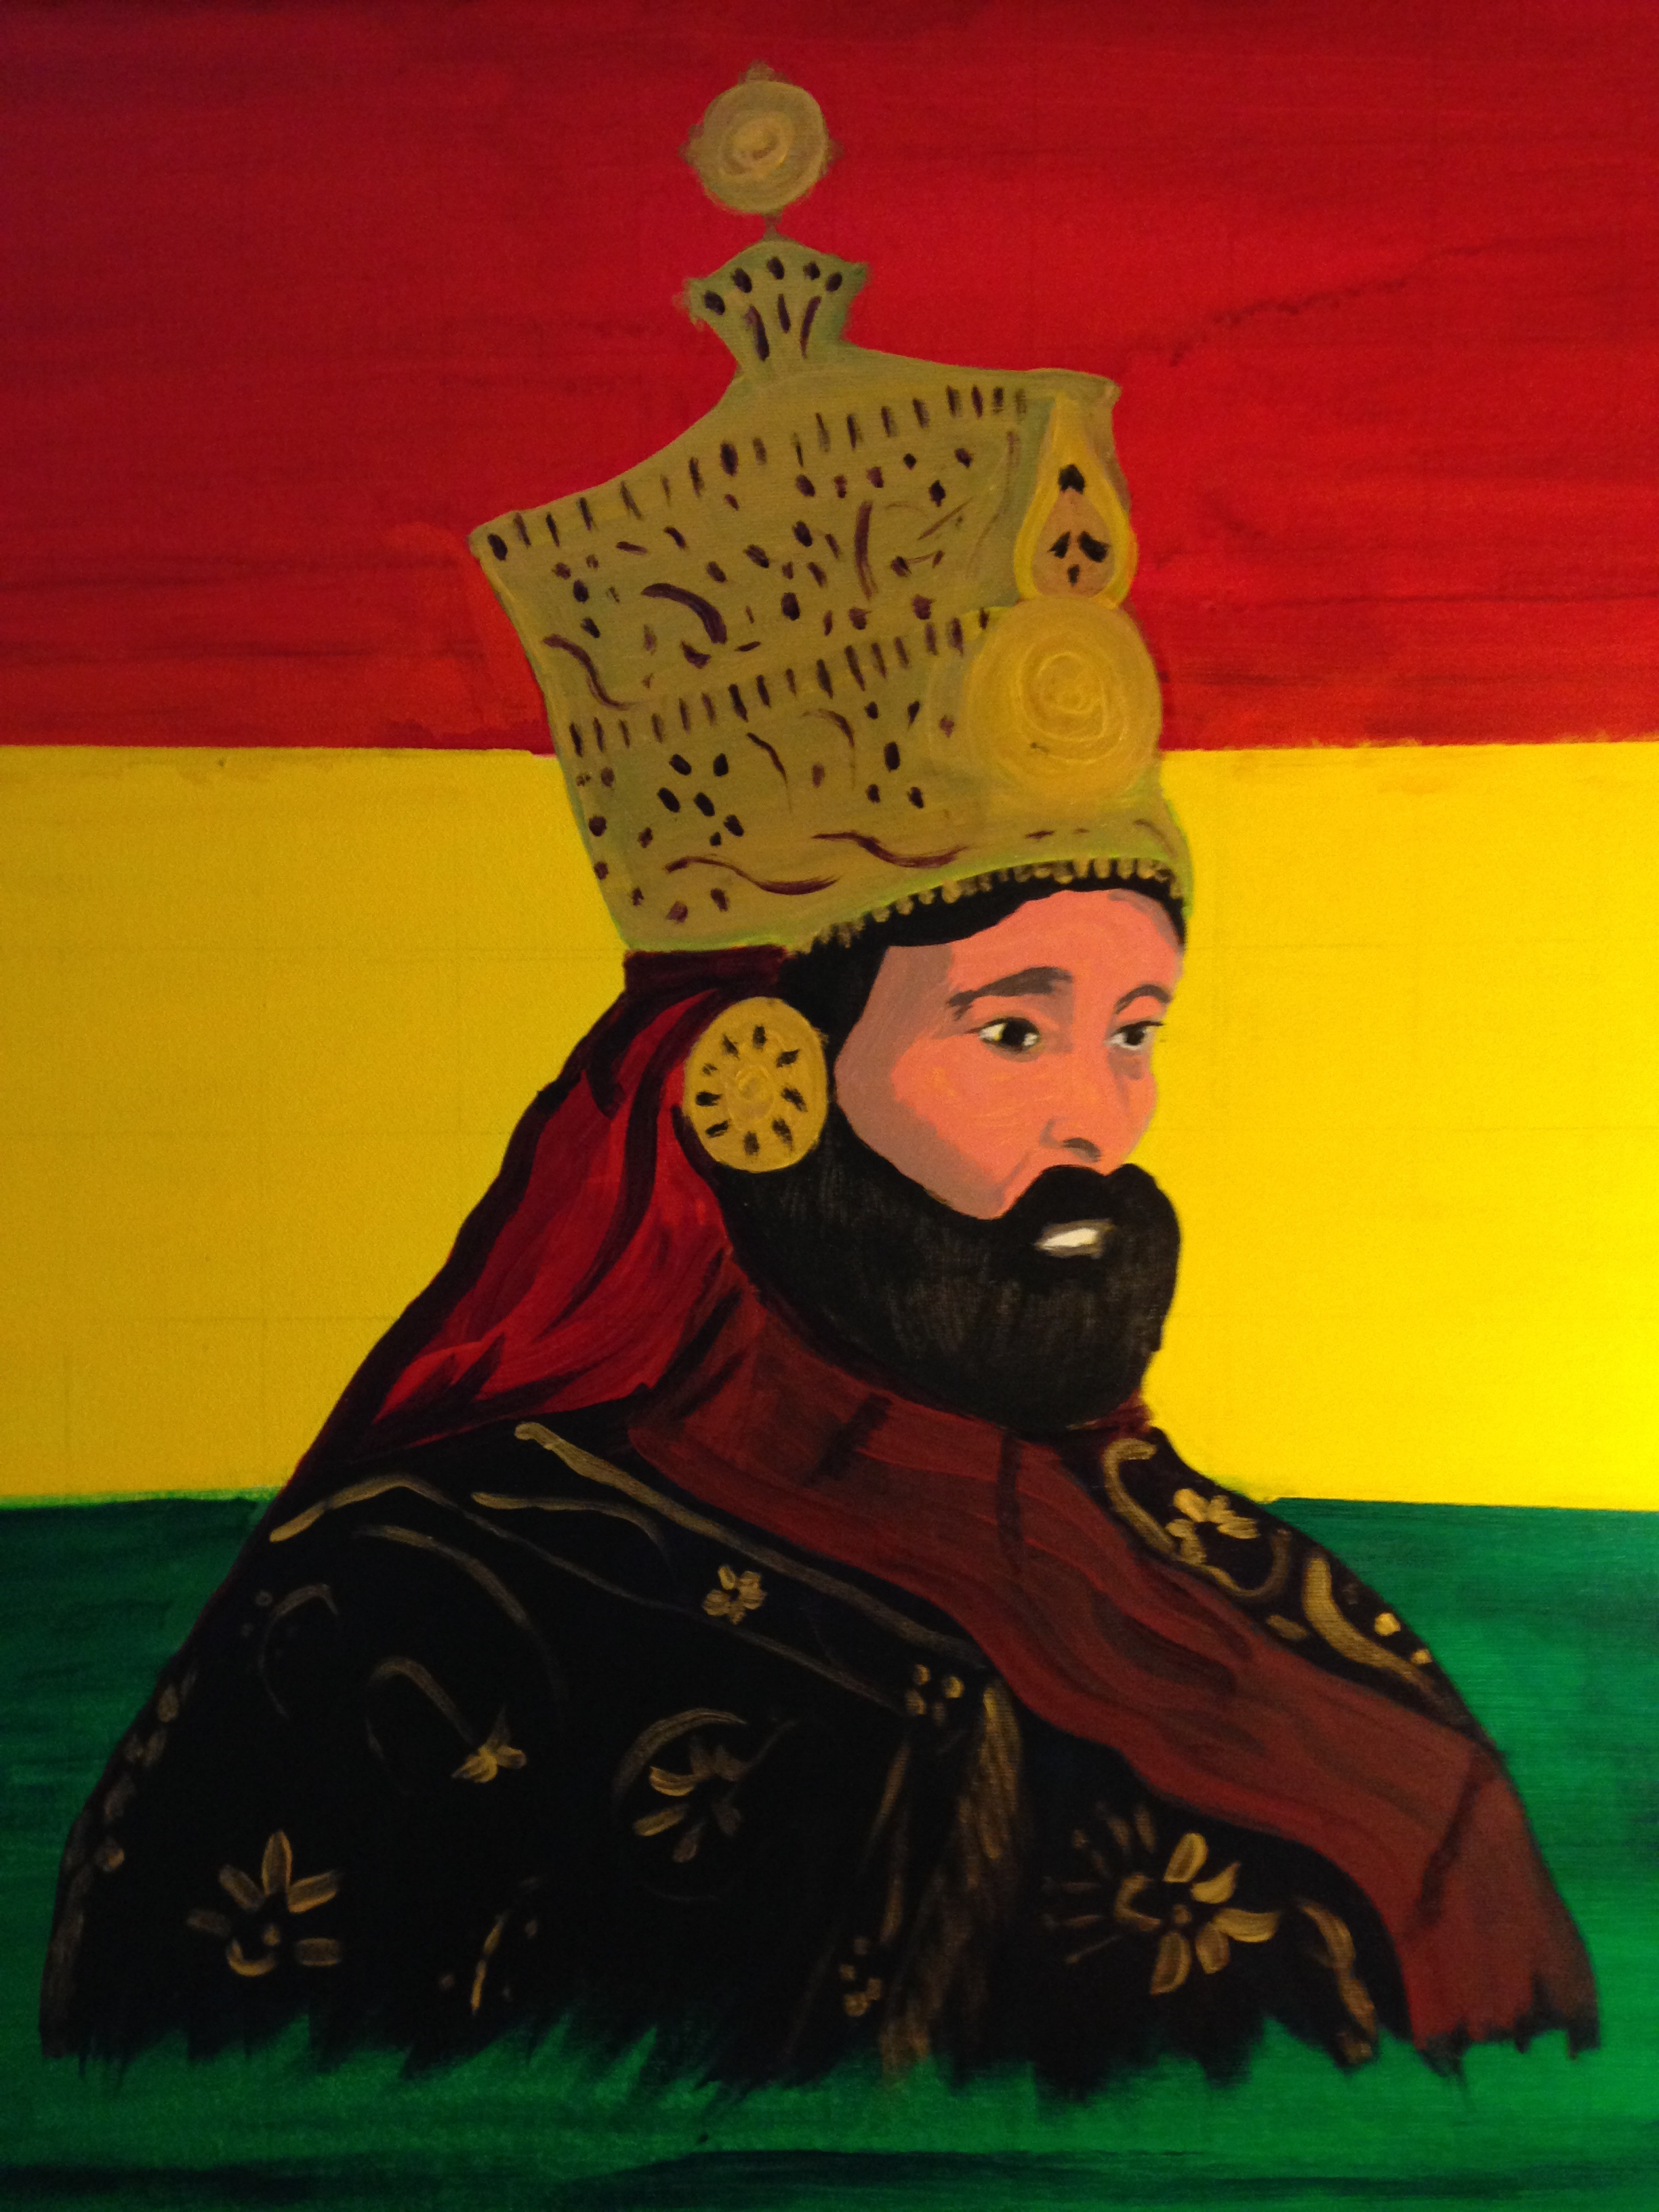 HIM on Flag by Zion Fyah